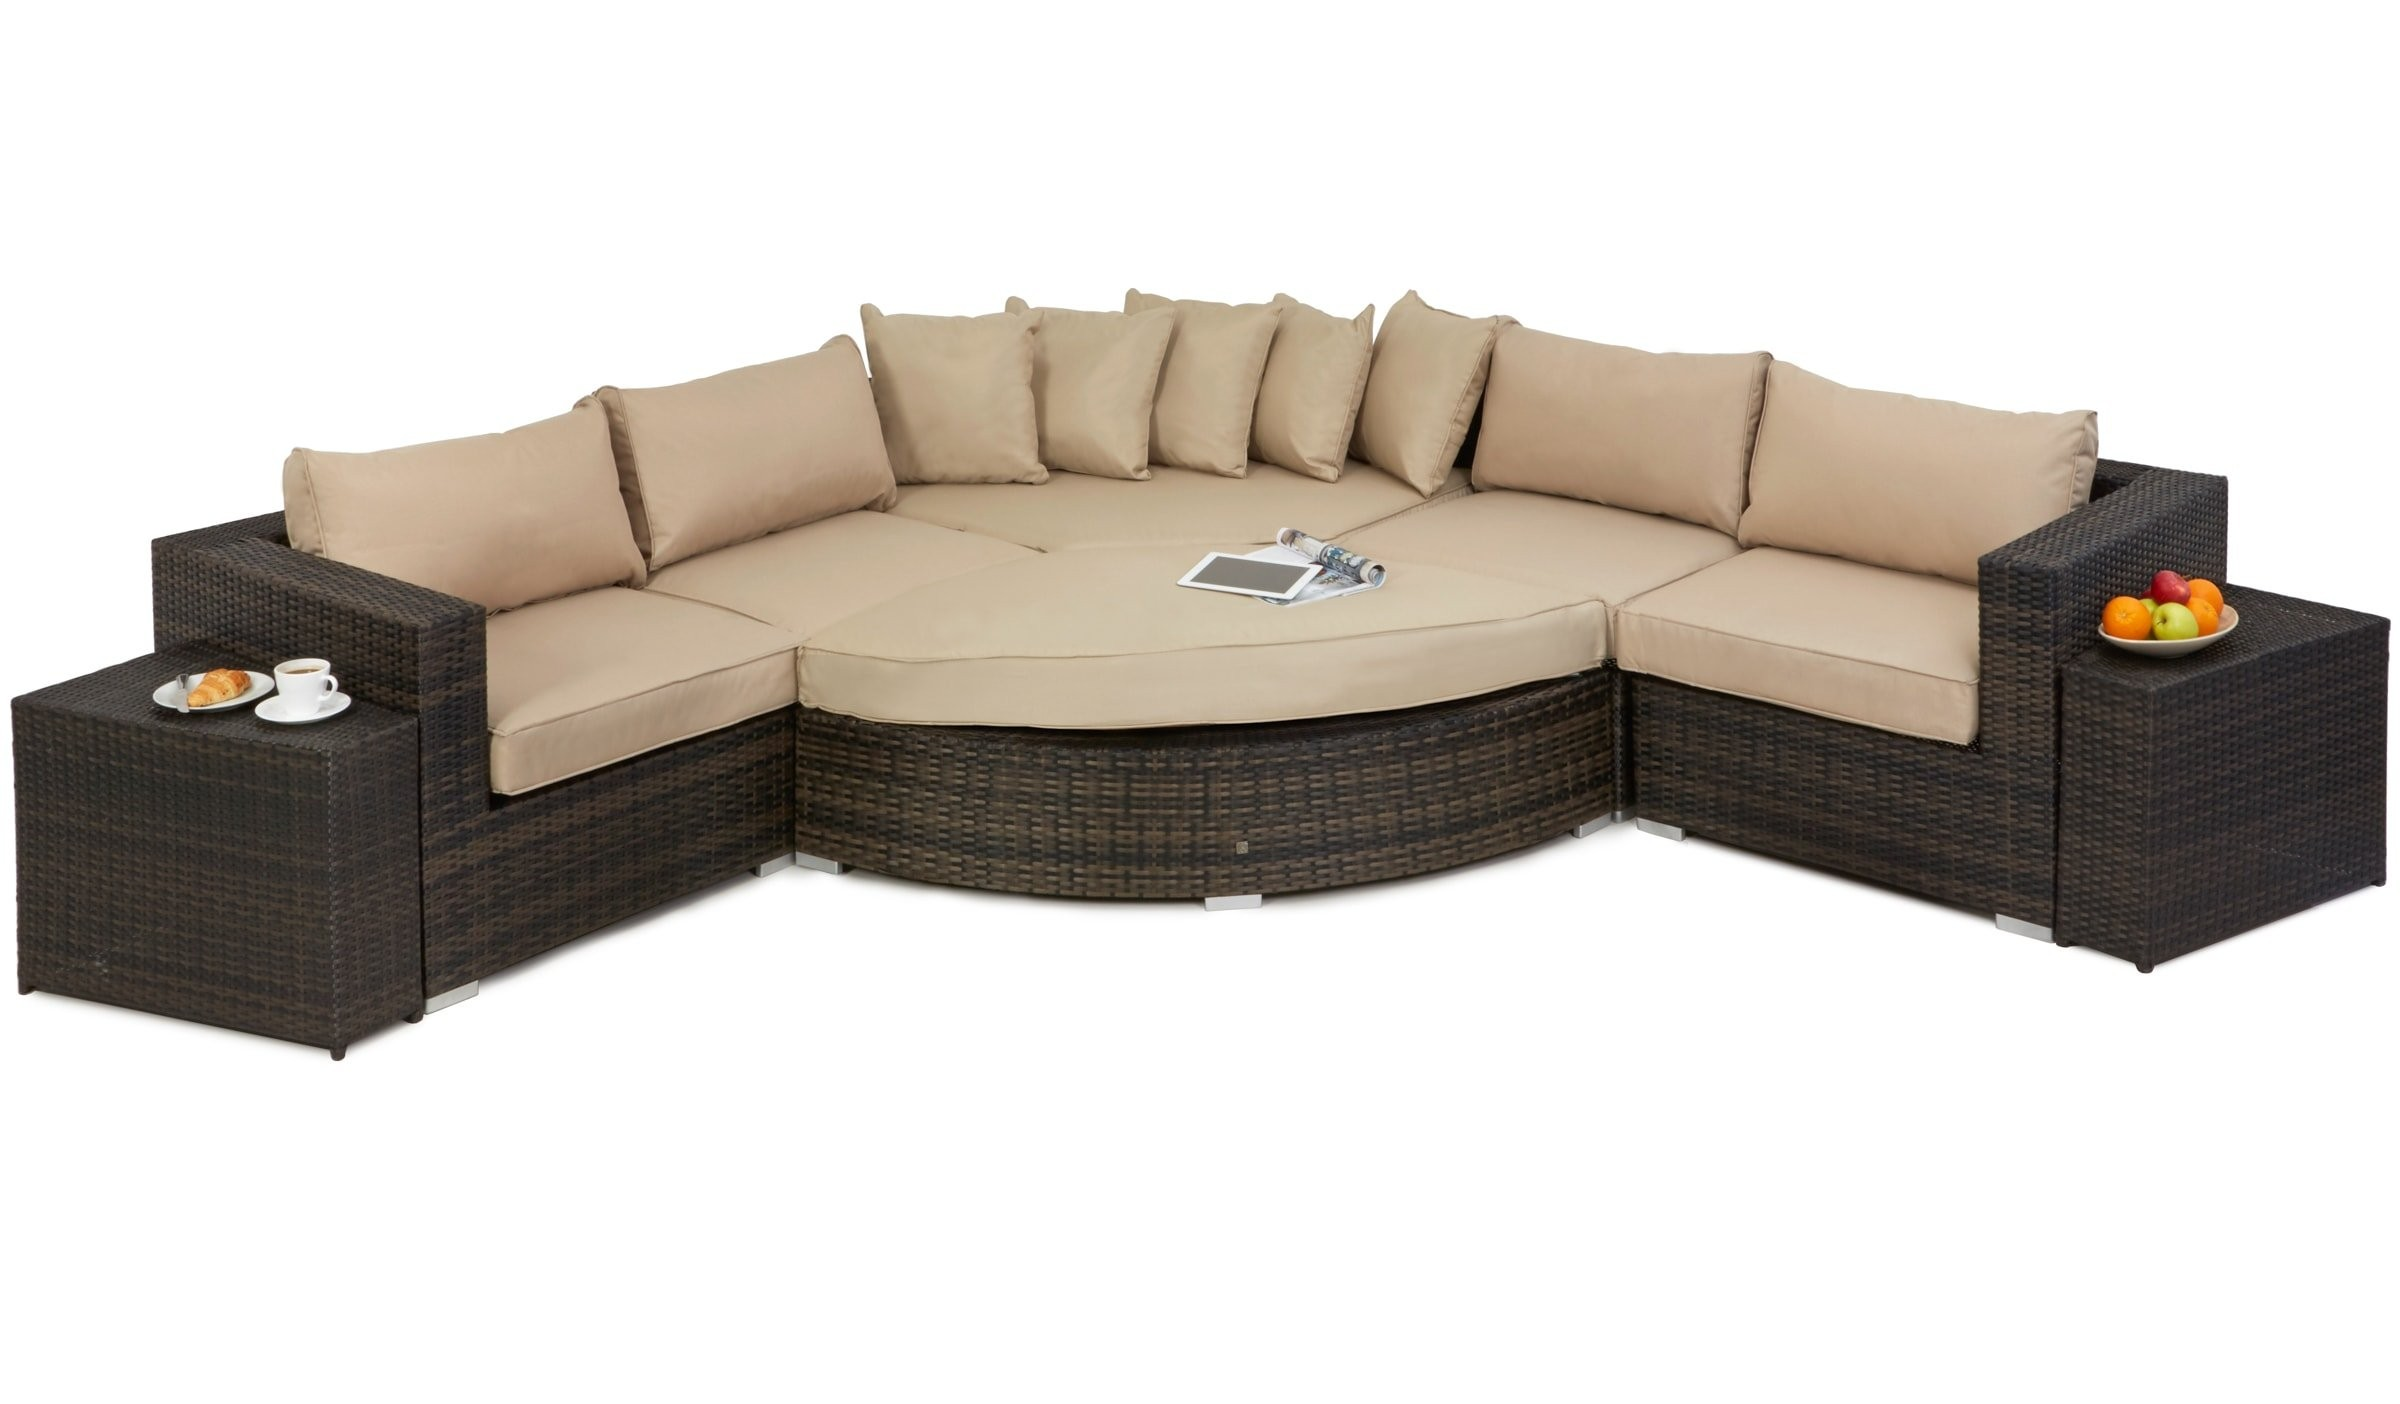 Maze rattan deluxe barcelona garden corner sofa set for 9 seater sofa set